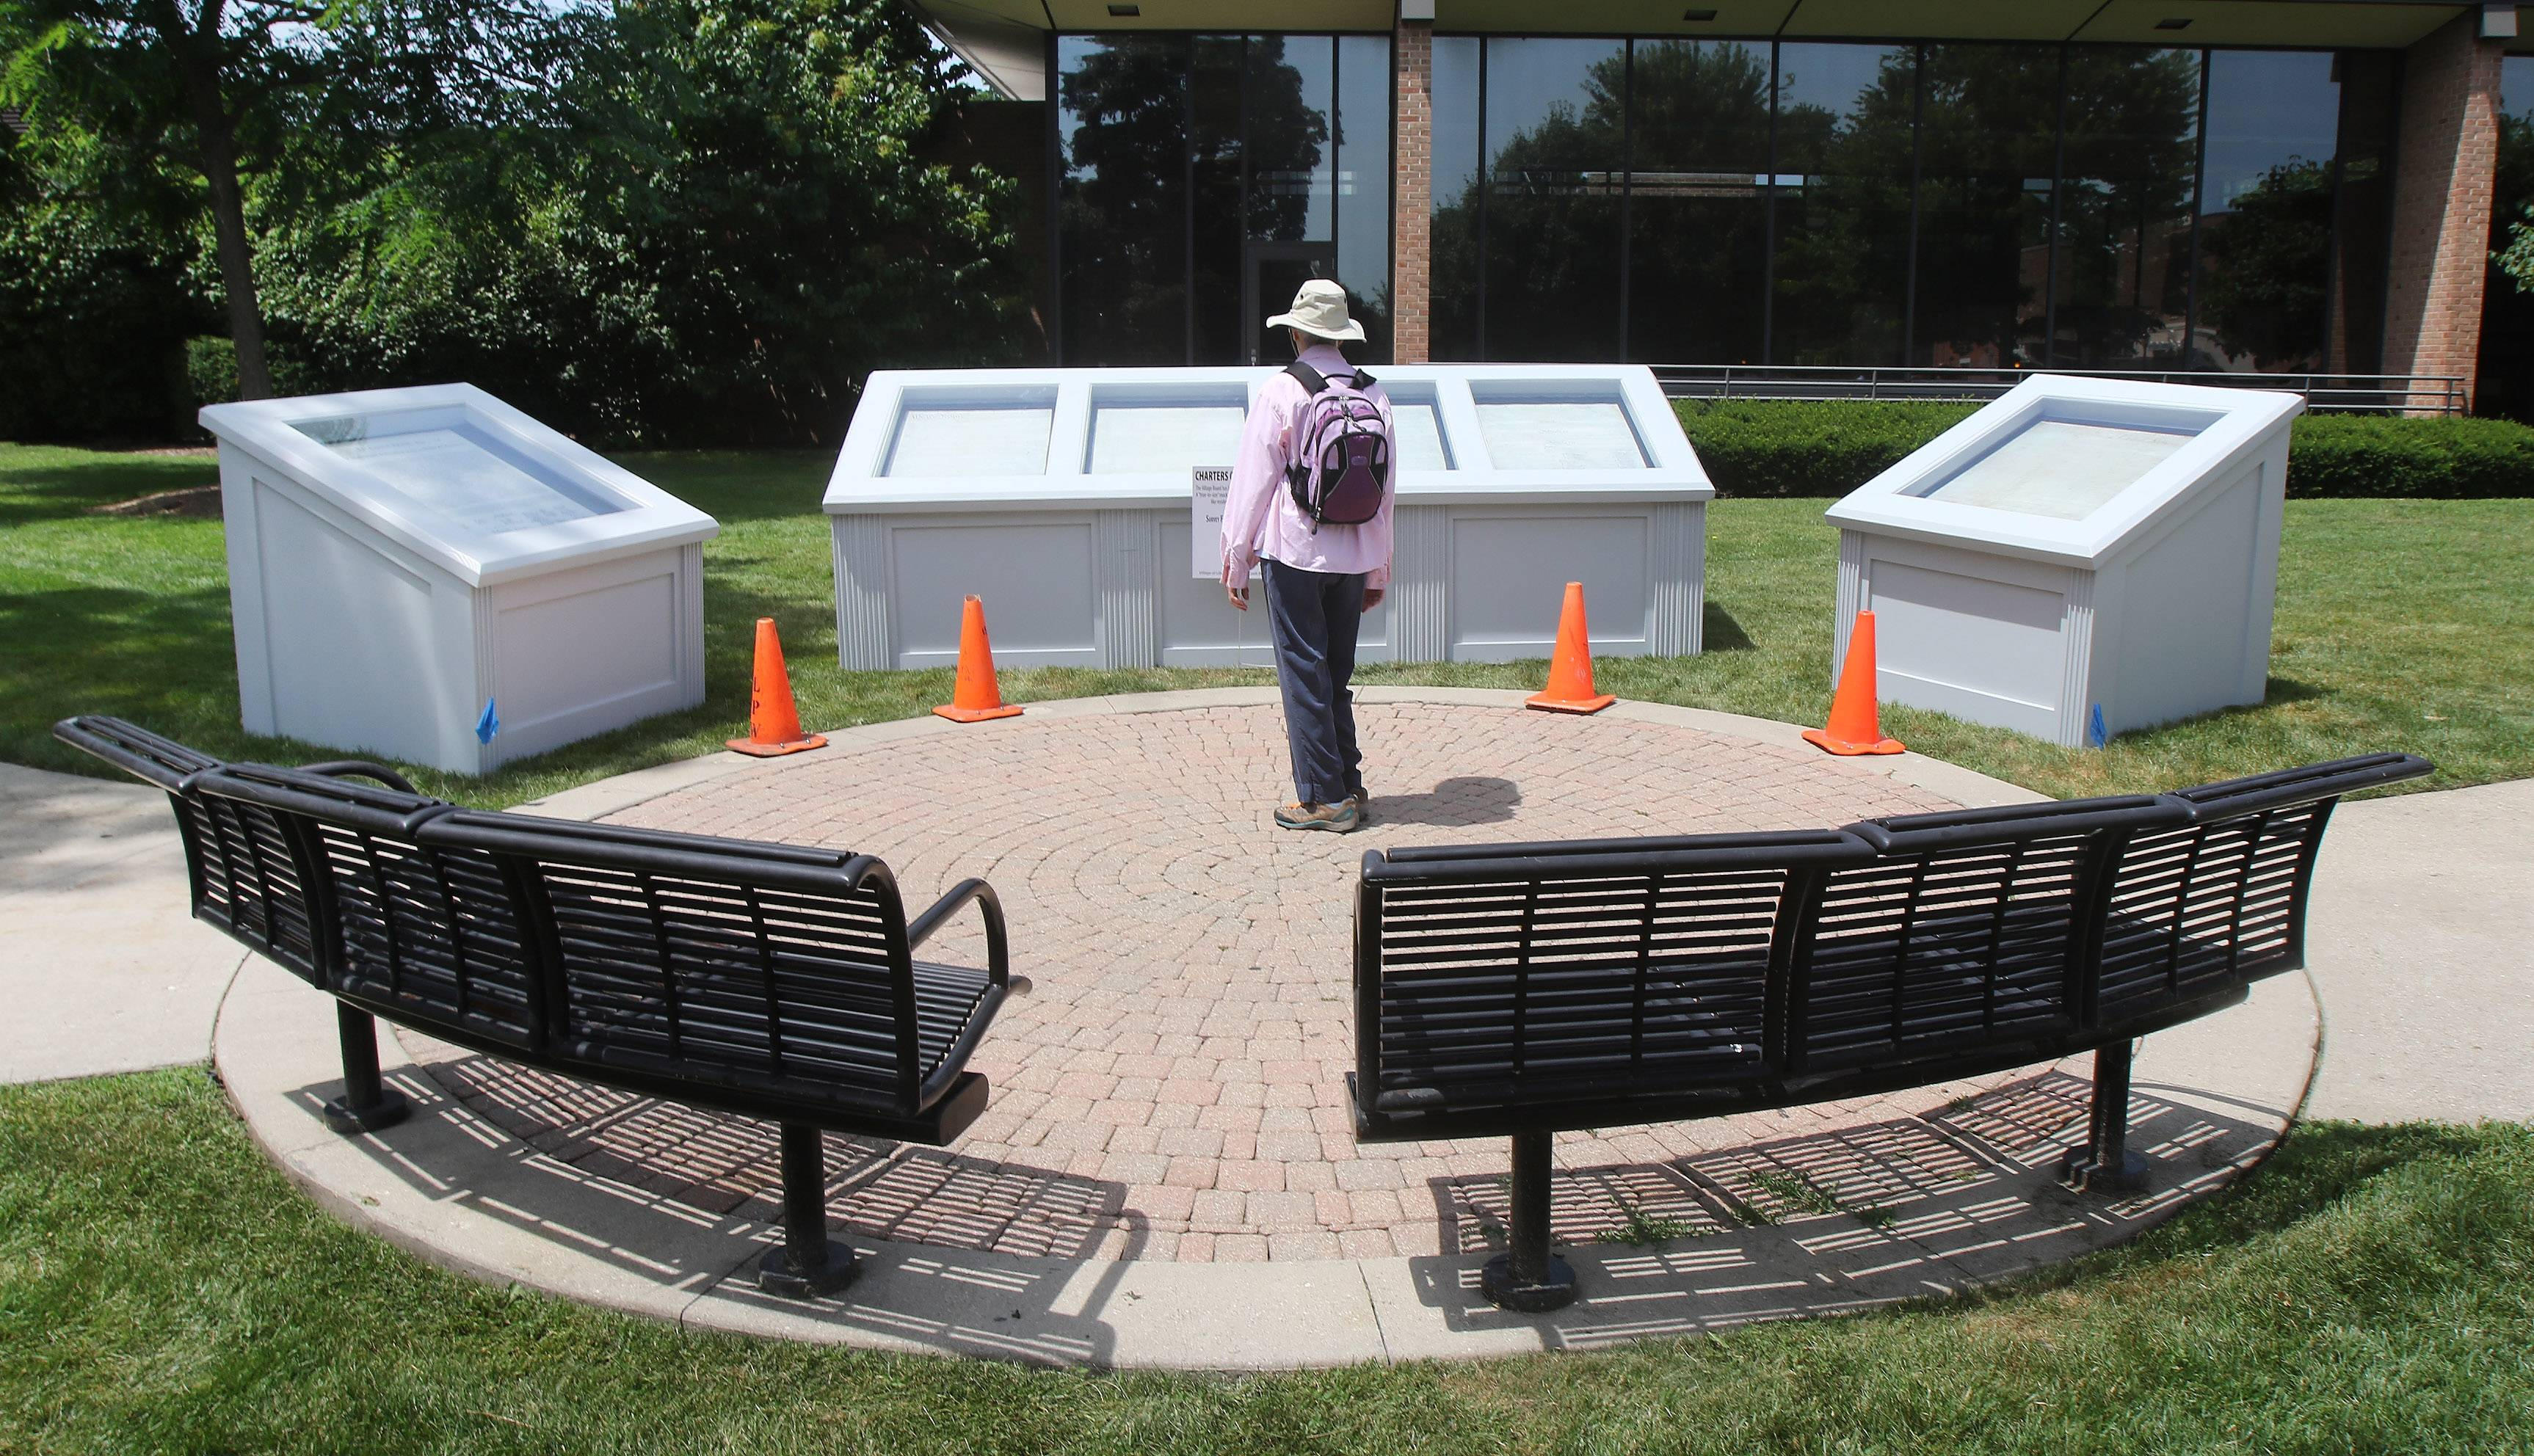 A woman stops to look at a replica of the Charters of Freedom exhibit installed on Wednesday at Cook Park in Libertyville.